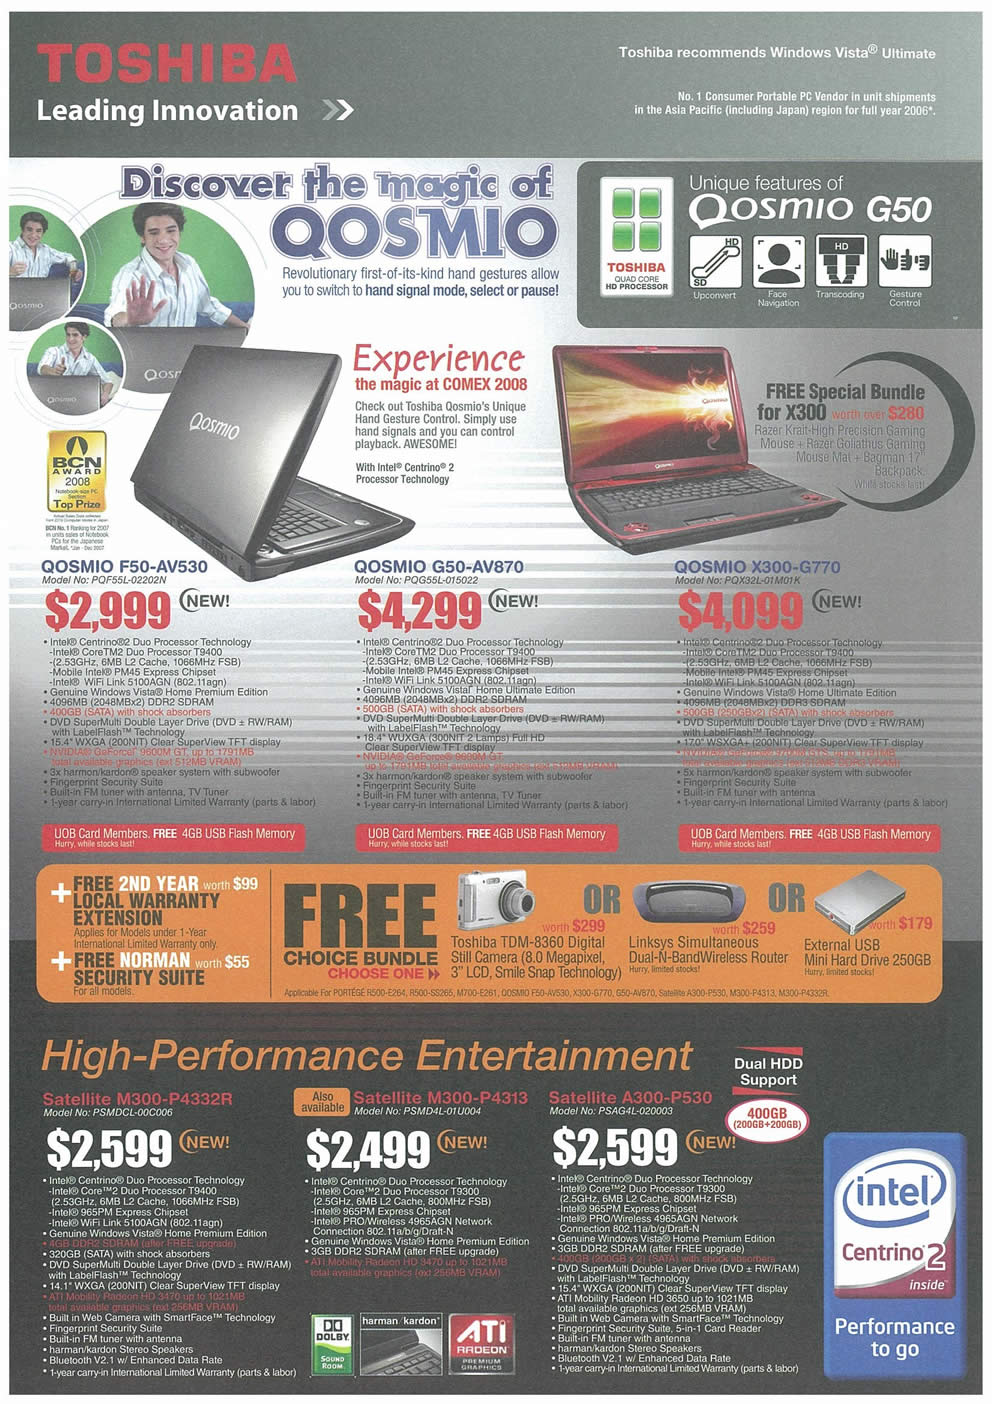 Comex 2008 price list image brochure of Toshiba Notebooks 01 Page 2